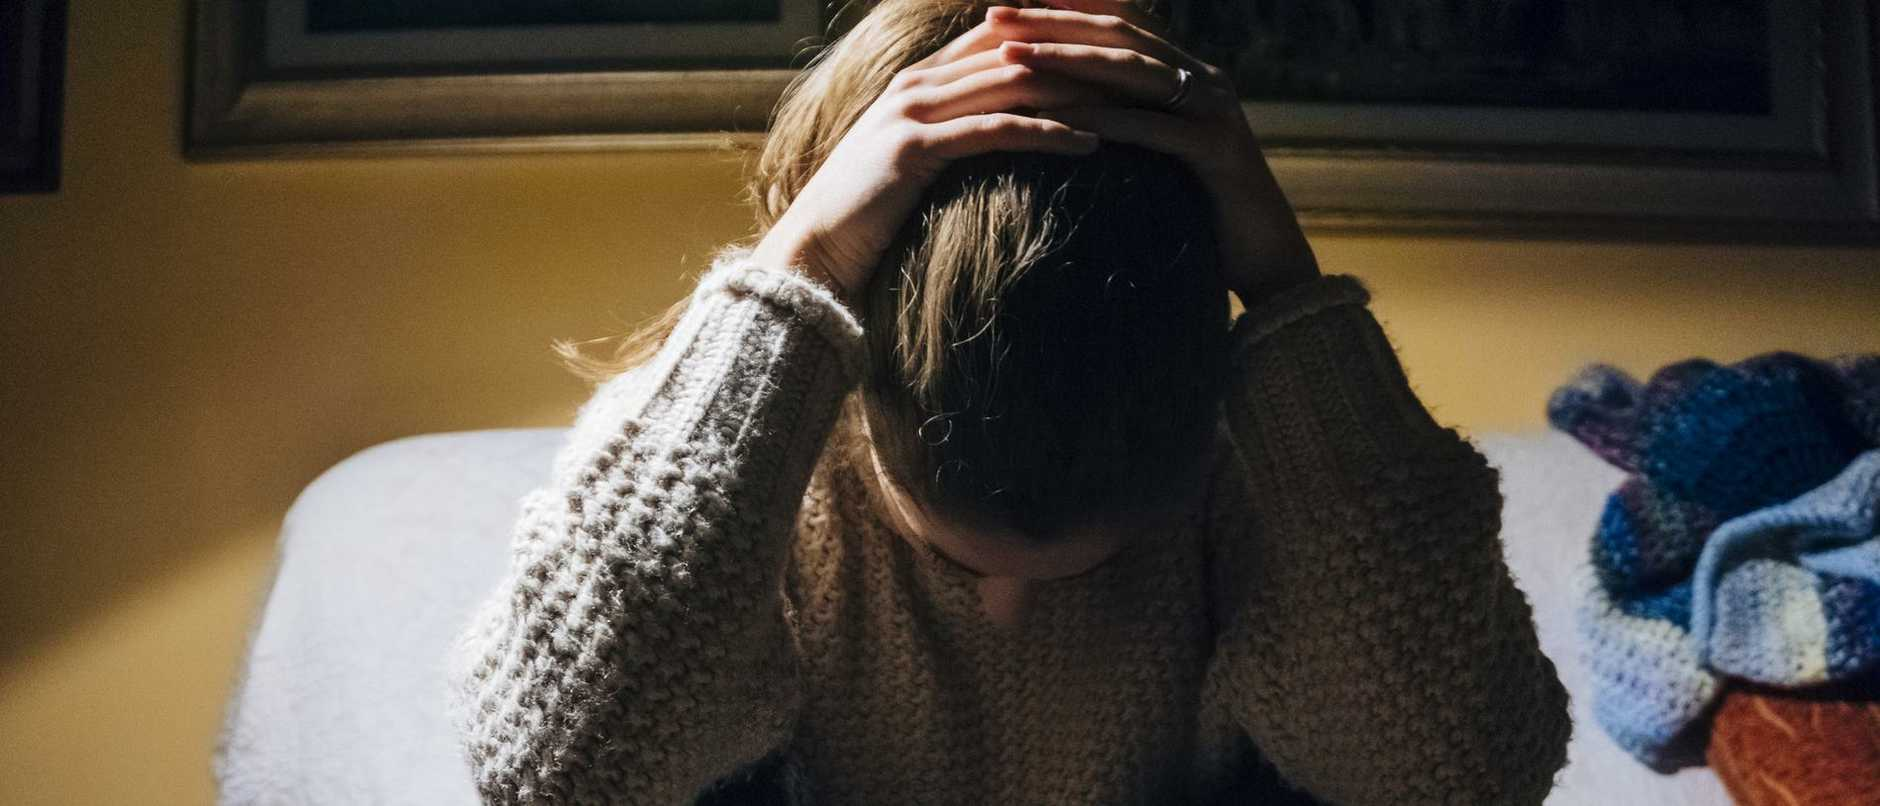 Wide Bay women are three times more likely to be hospitalised for mental health issues.